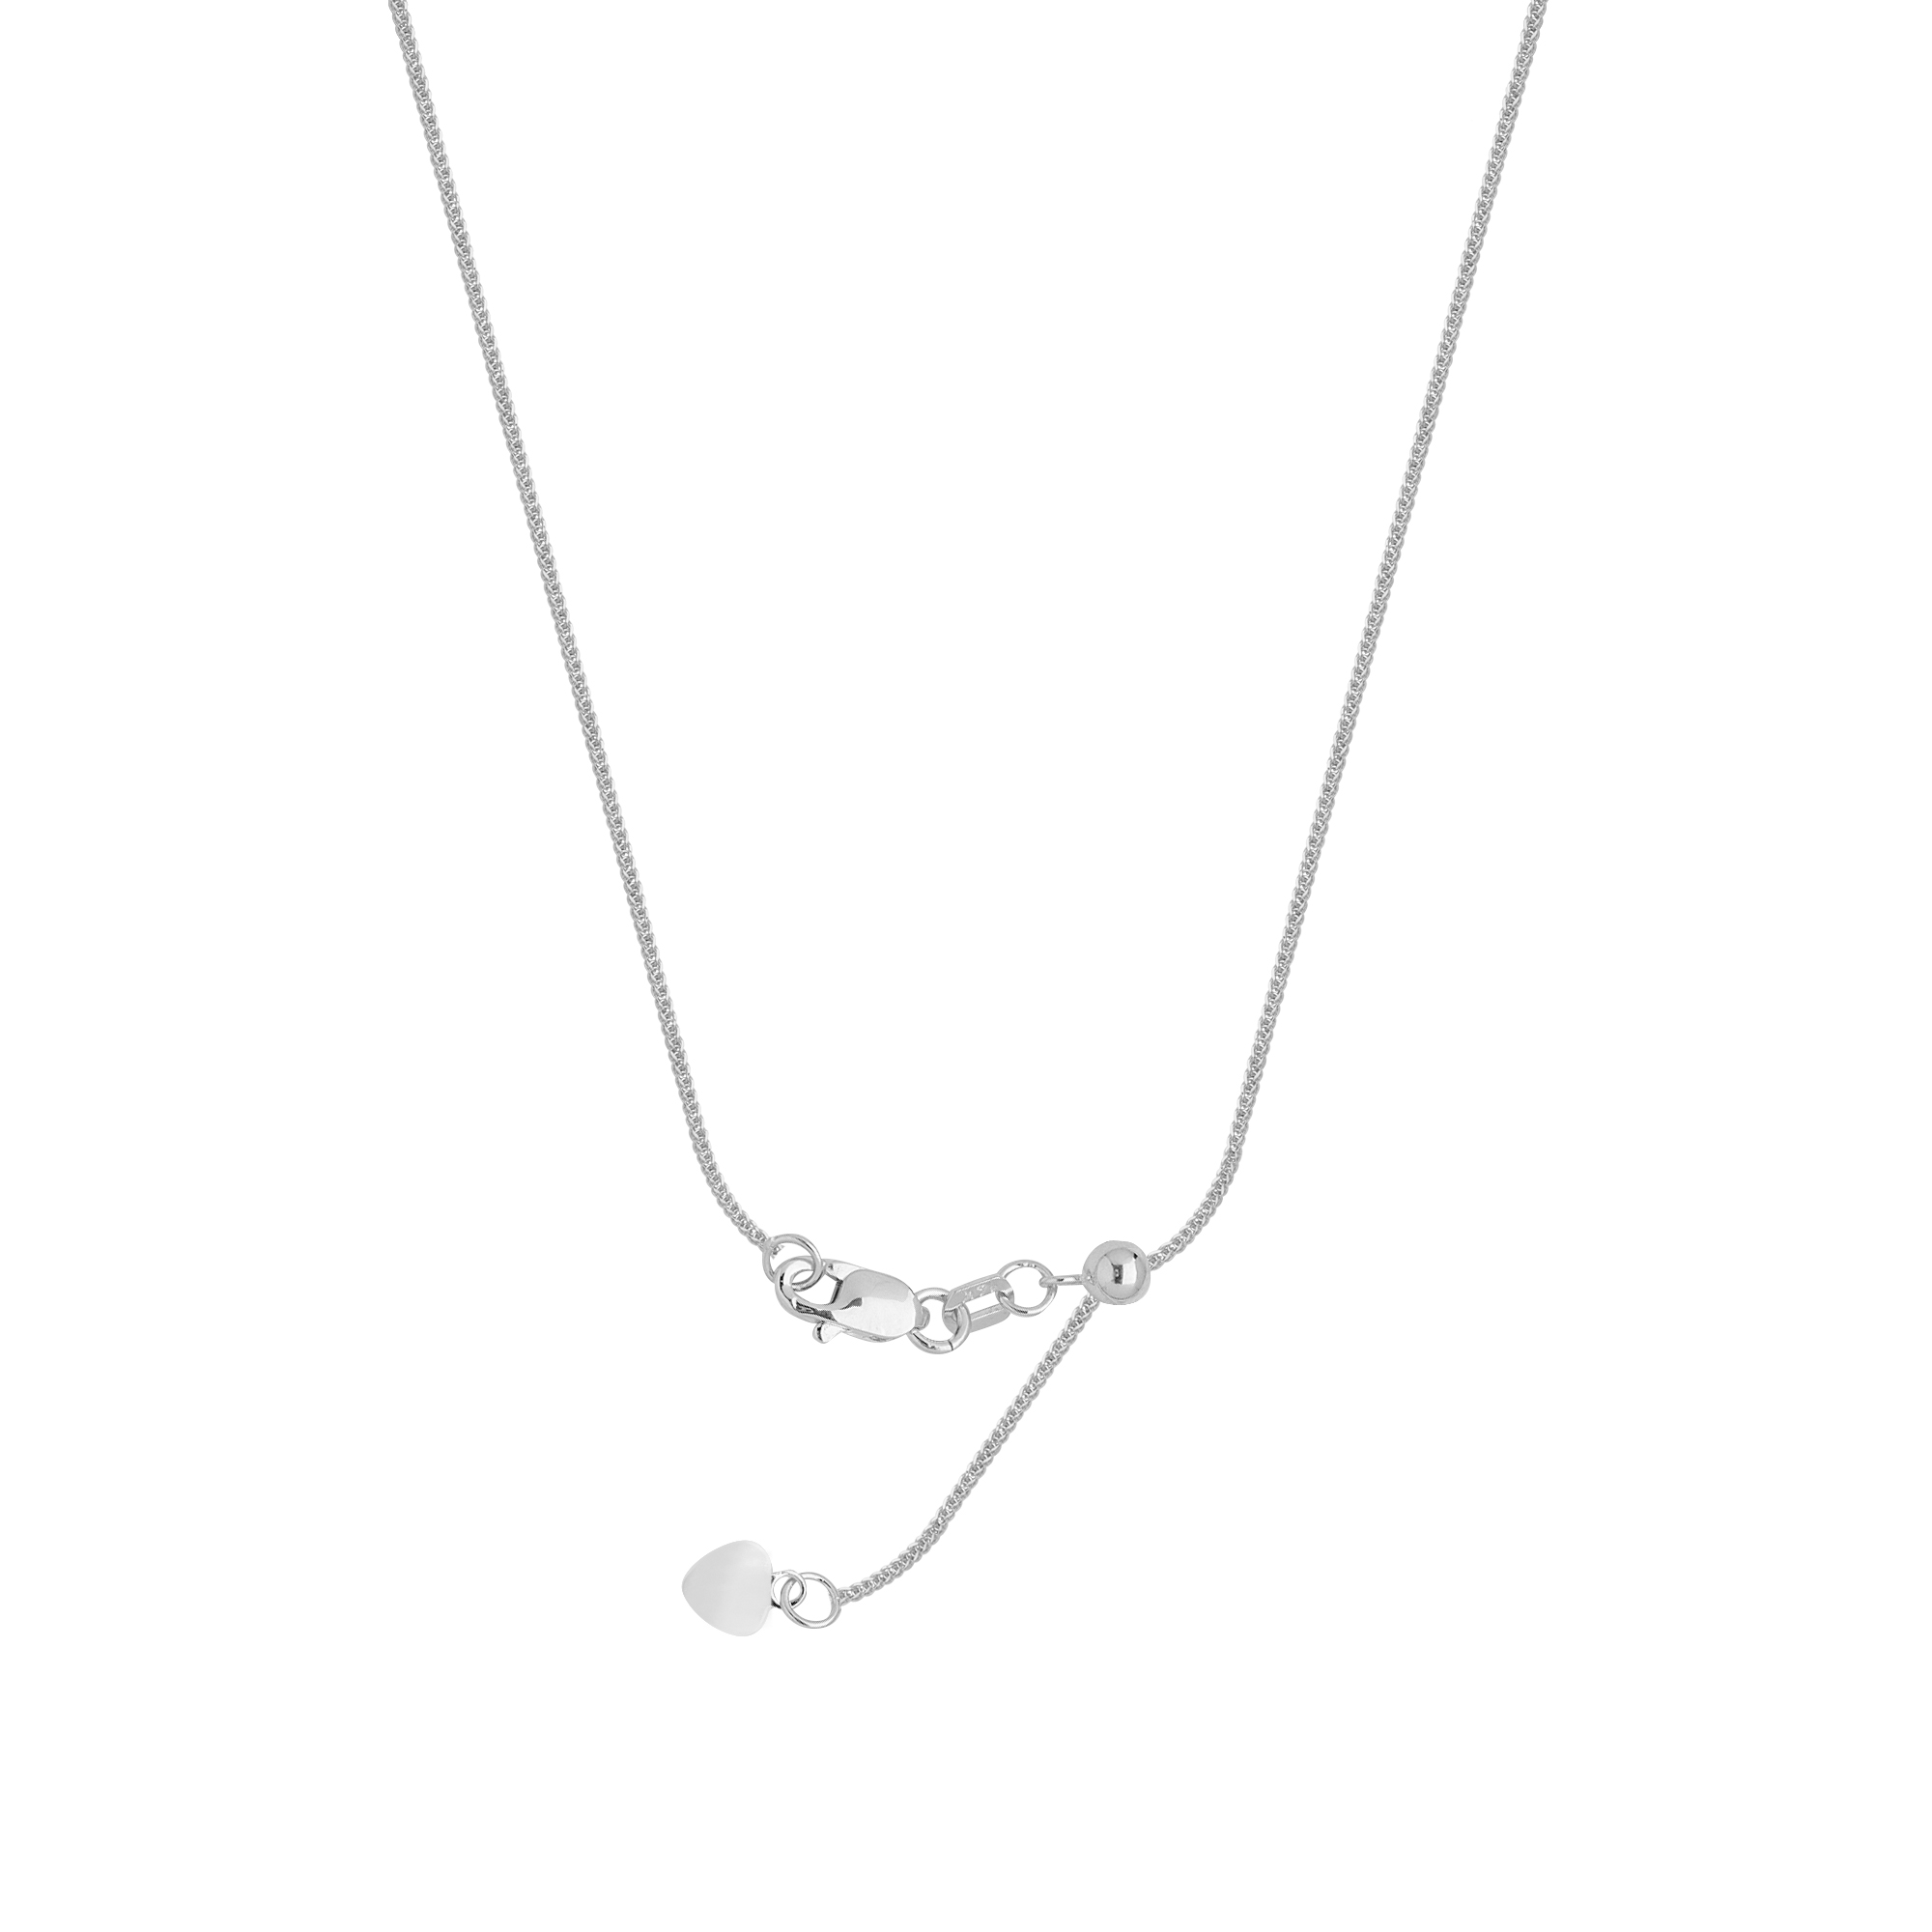 14Kt Gold Diamond Cut Cable Chain With Lobster Lock Cable Chain 20 Inches Long